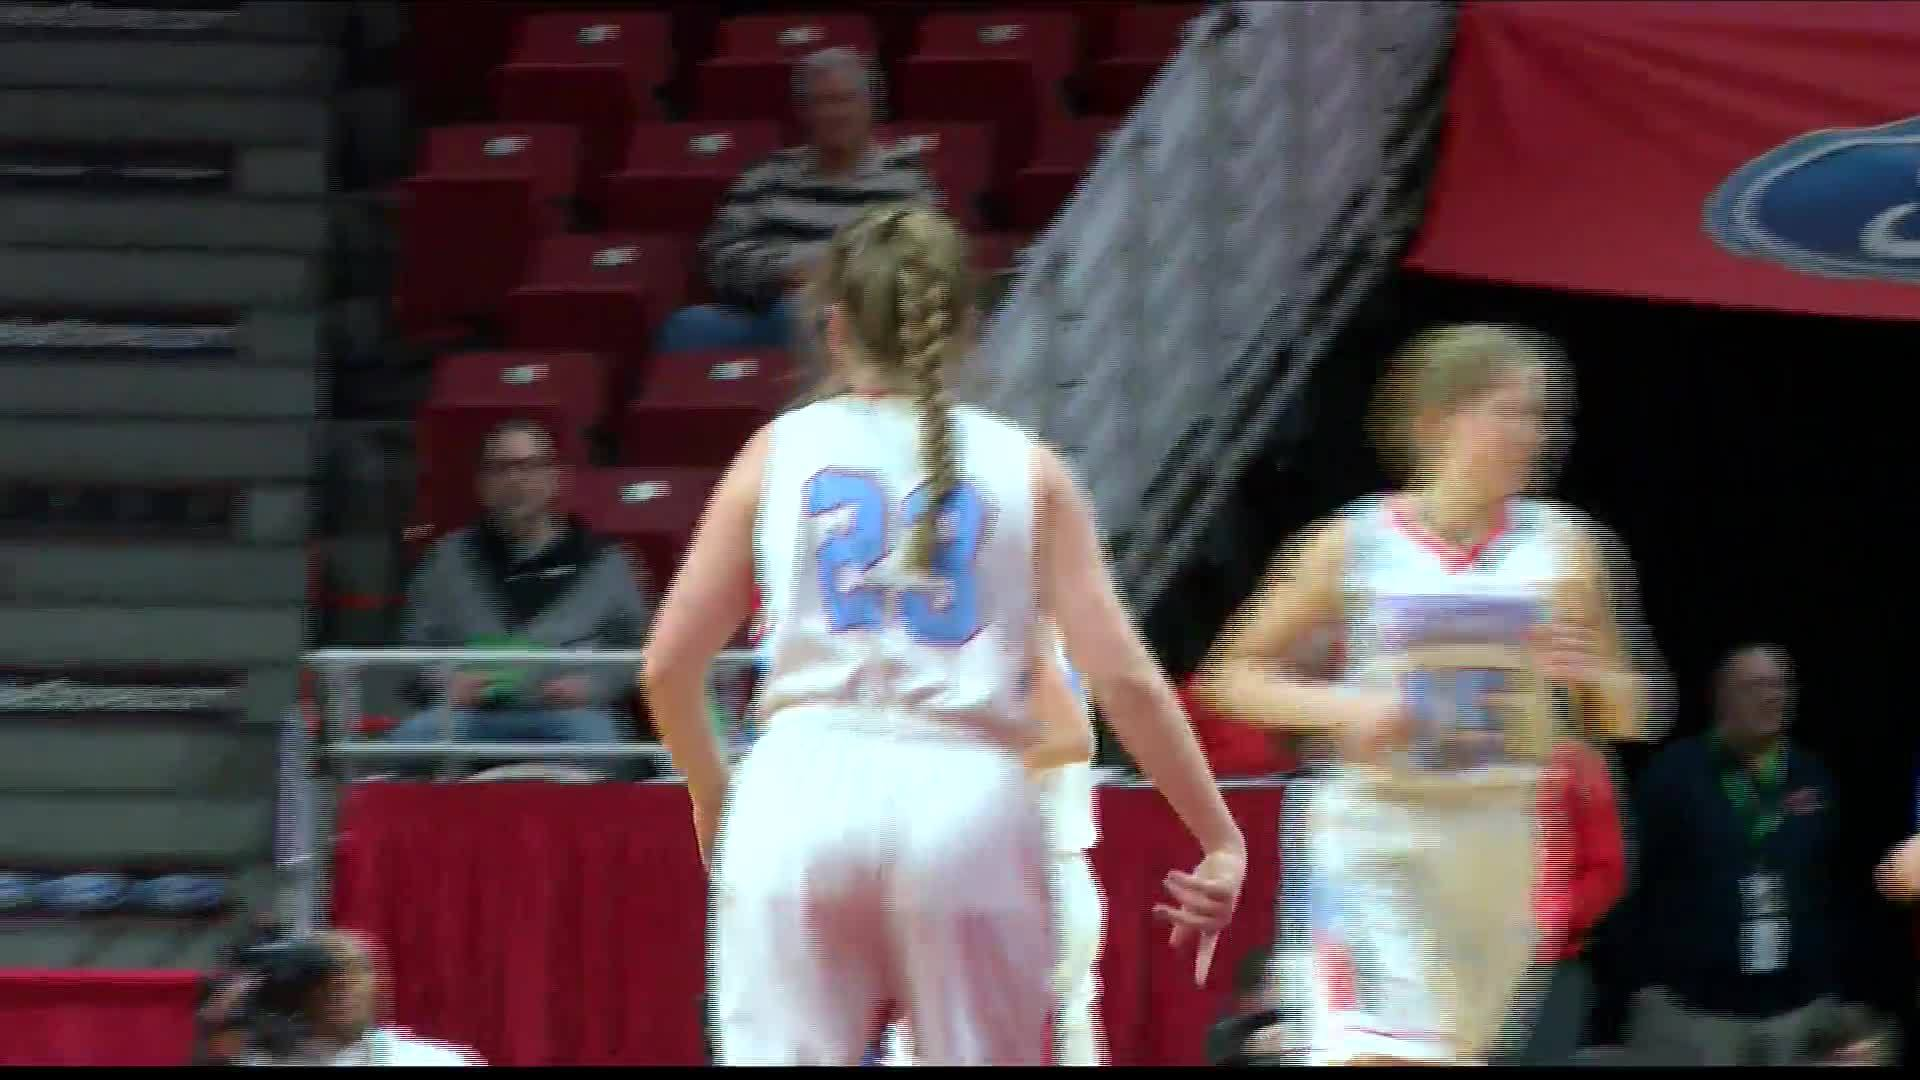 Lewistown_Girls_Fall_In_State_Semifinals_6_20190223044302